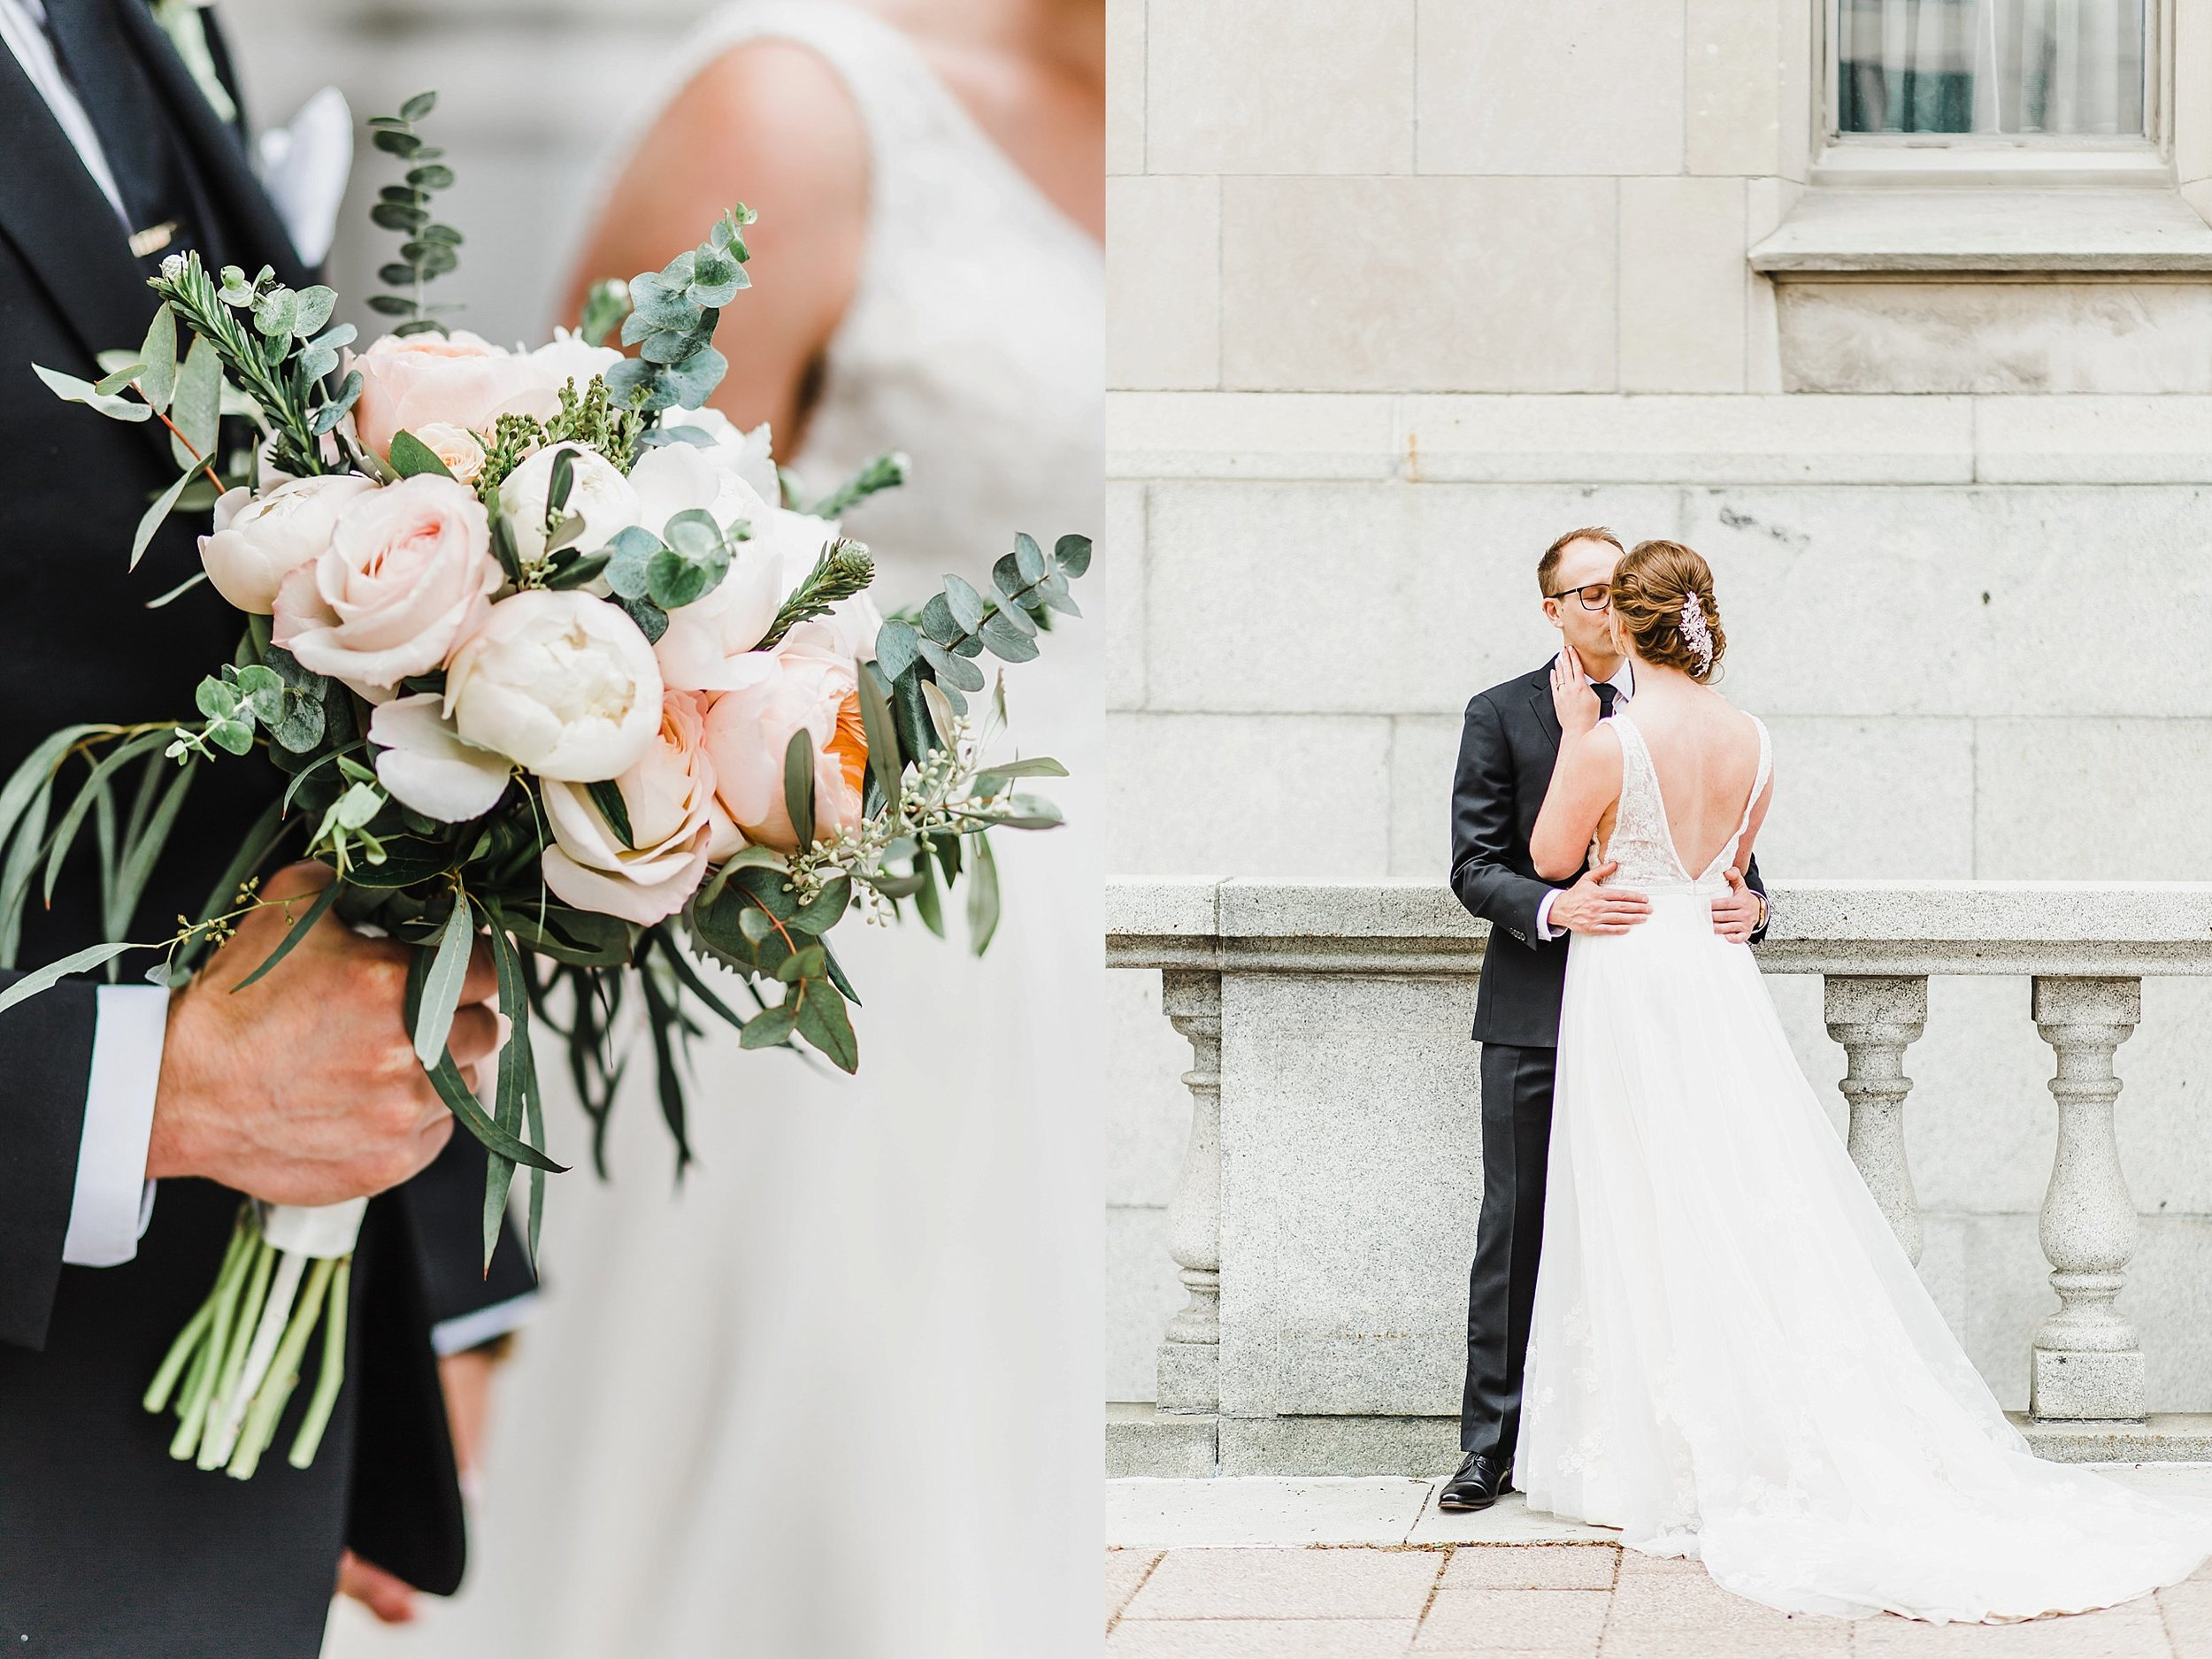 light airy indie fine art ottawa wedding photographer | Ali and Batoul Photography_0328.jpg